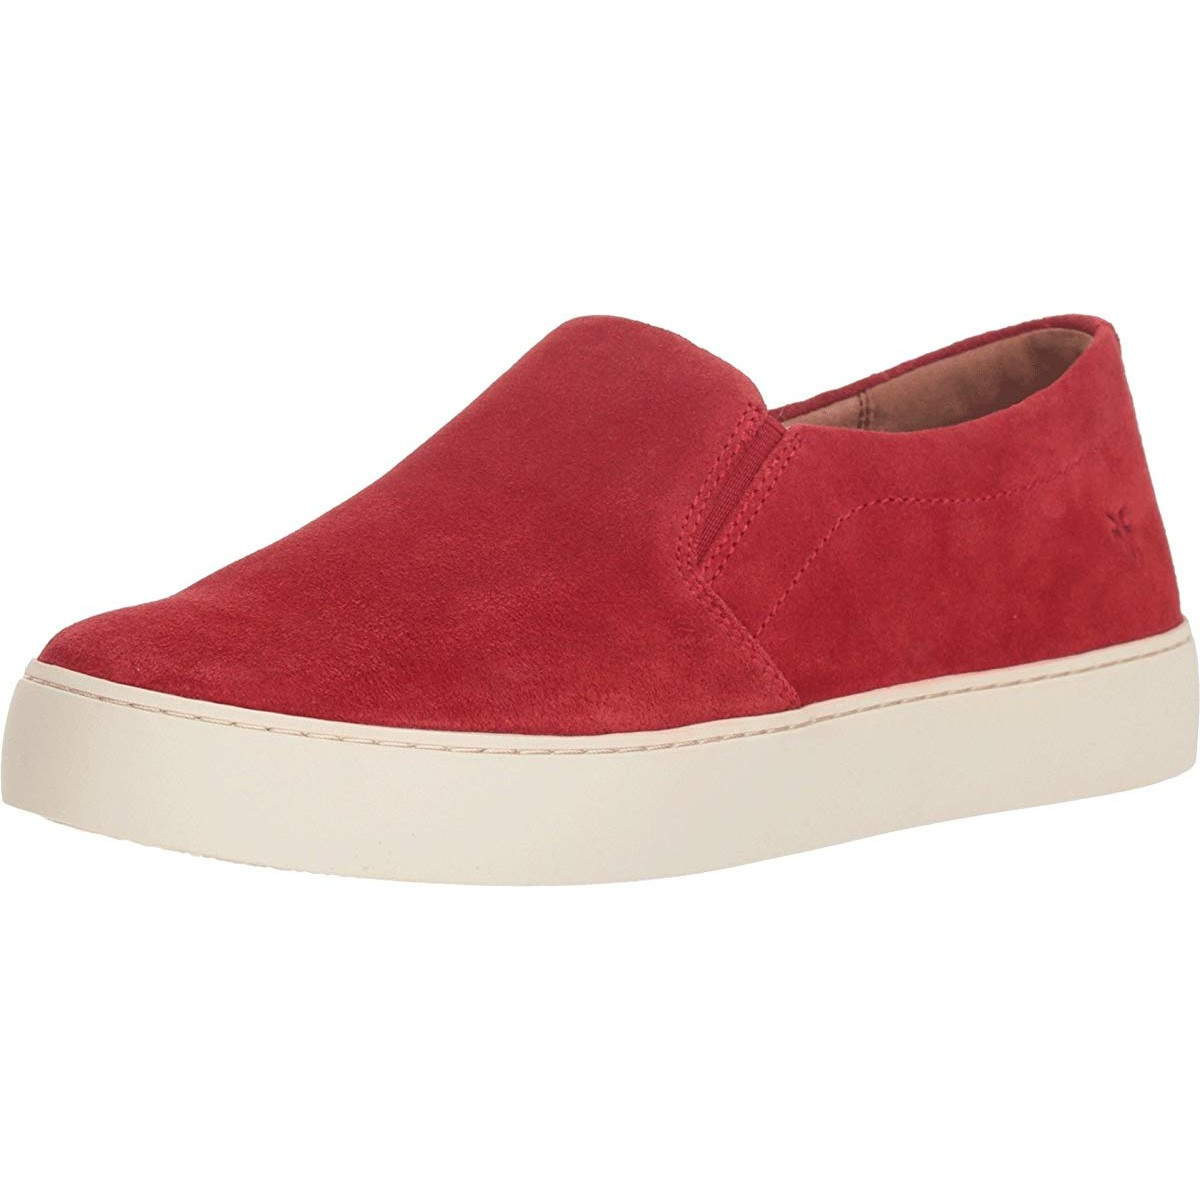 Кроссовки Frye Lena Slip-On Red - Оригинал, фото 1